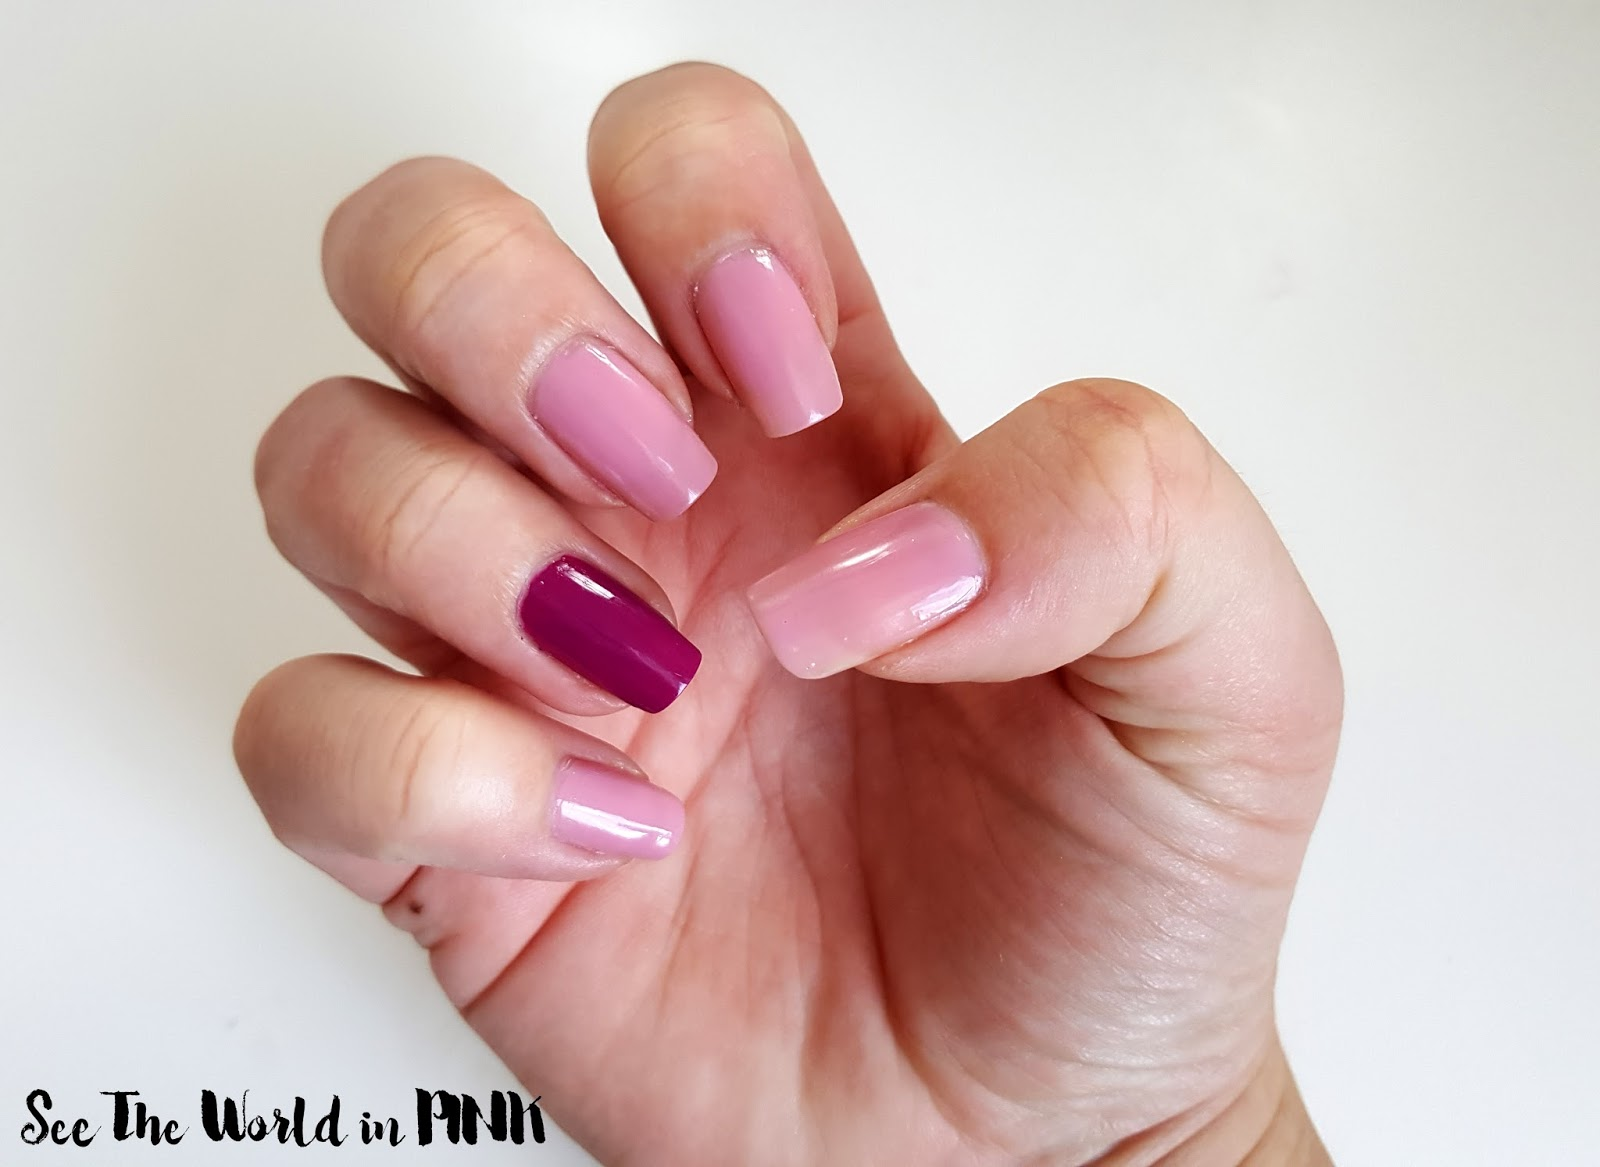 Manicure Tuesday - Mani/Pedi at Esme Beauty & Floral Bar